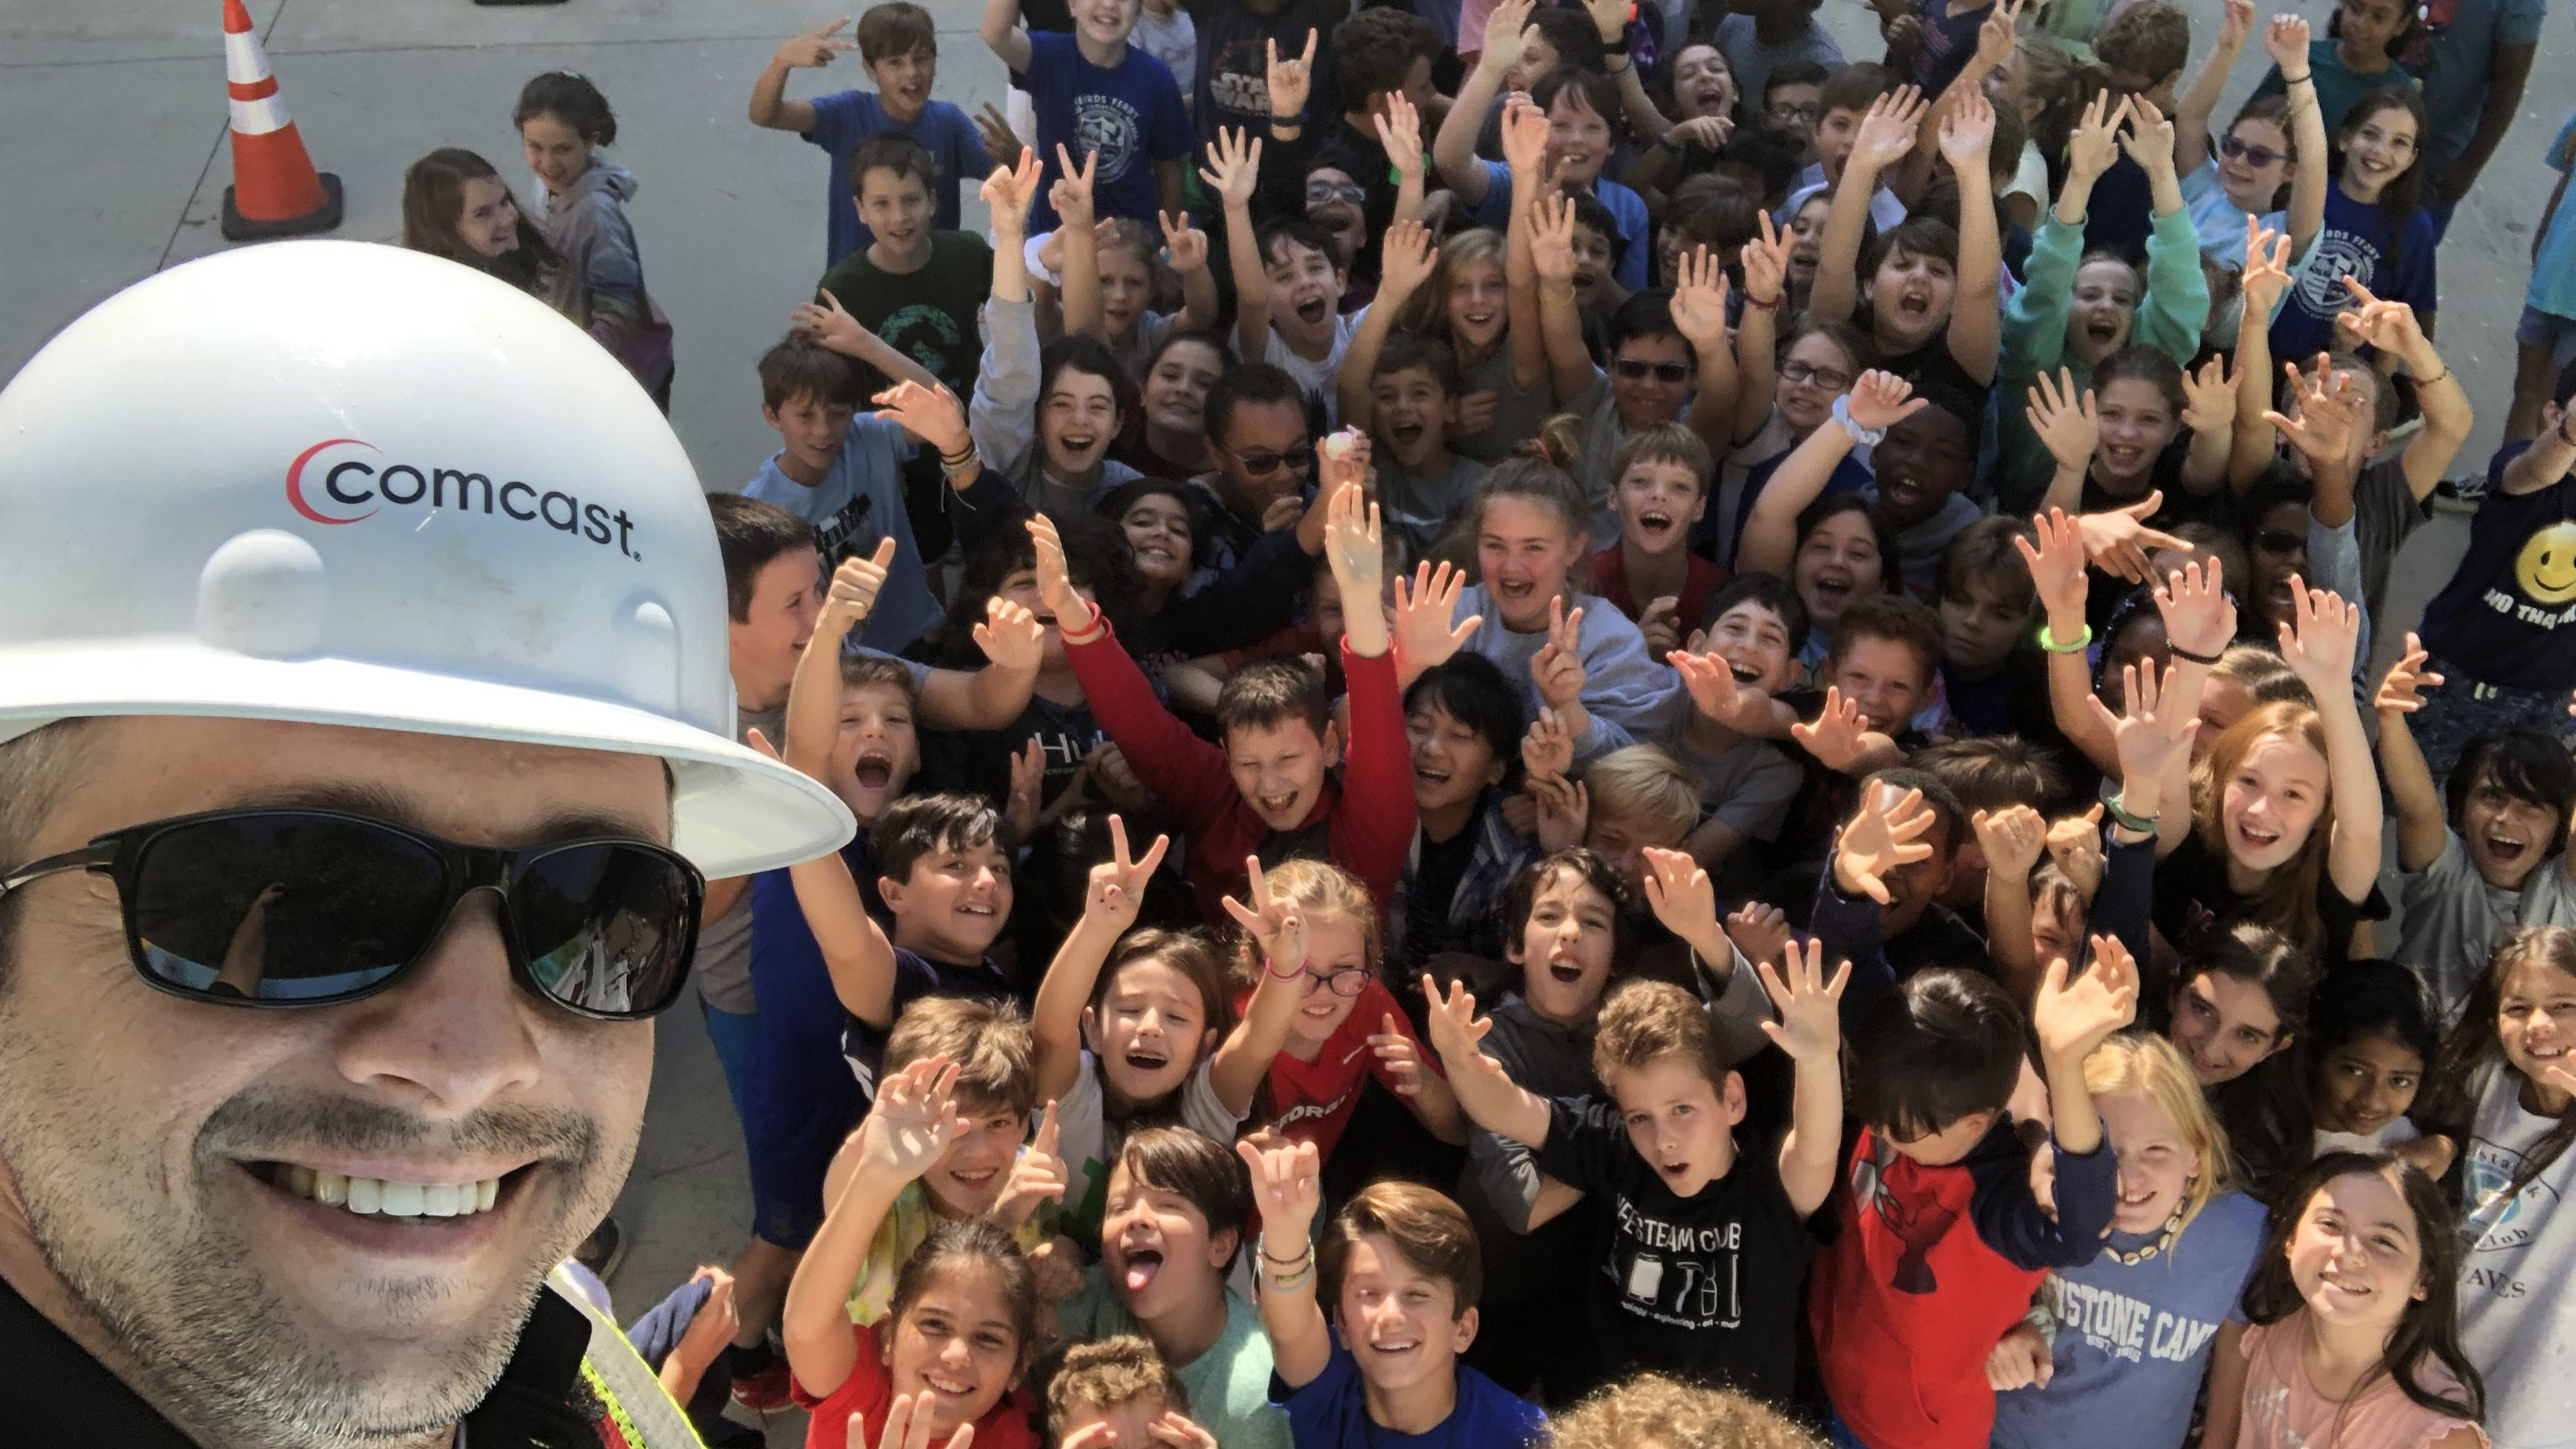 A Comcast technician and students from Heards Ferry Elementary School in Sandy Springs, Ga.